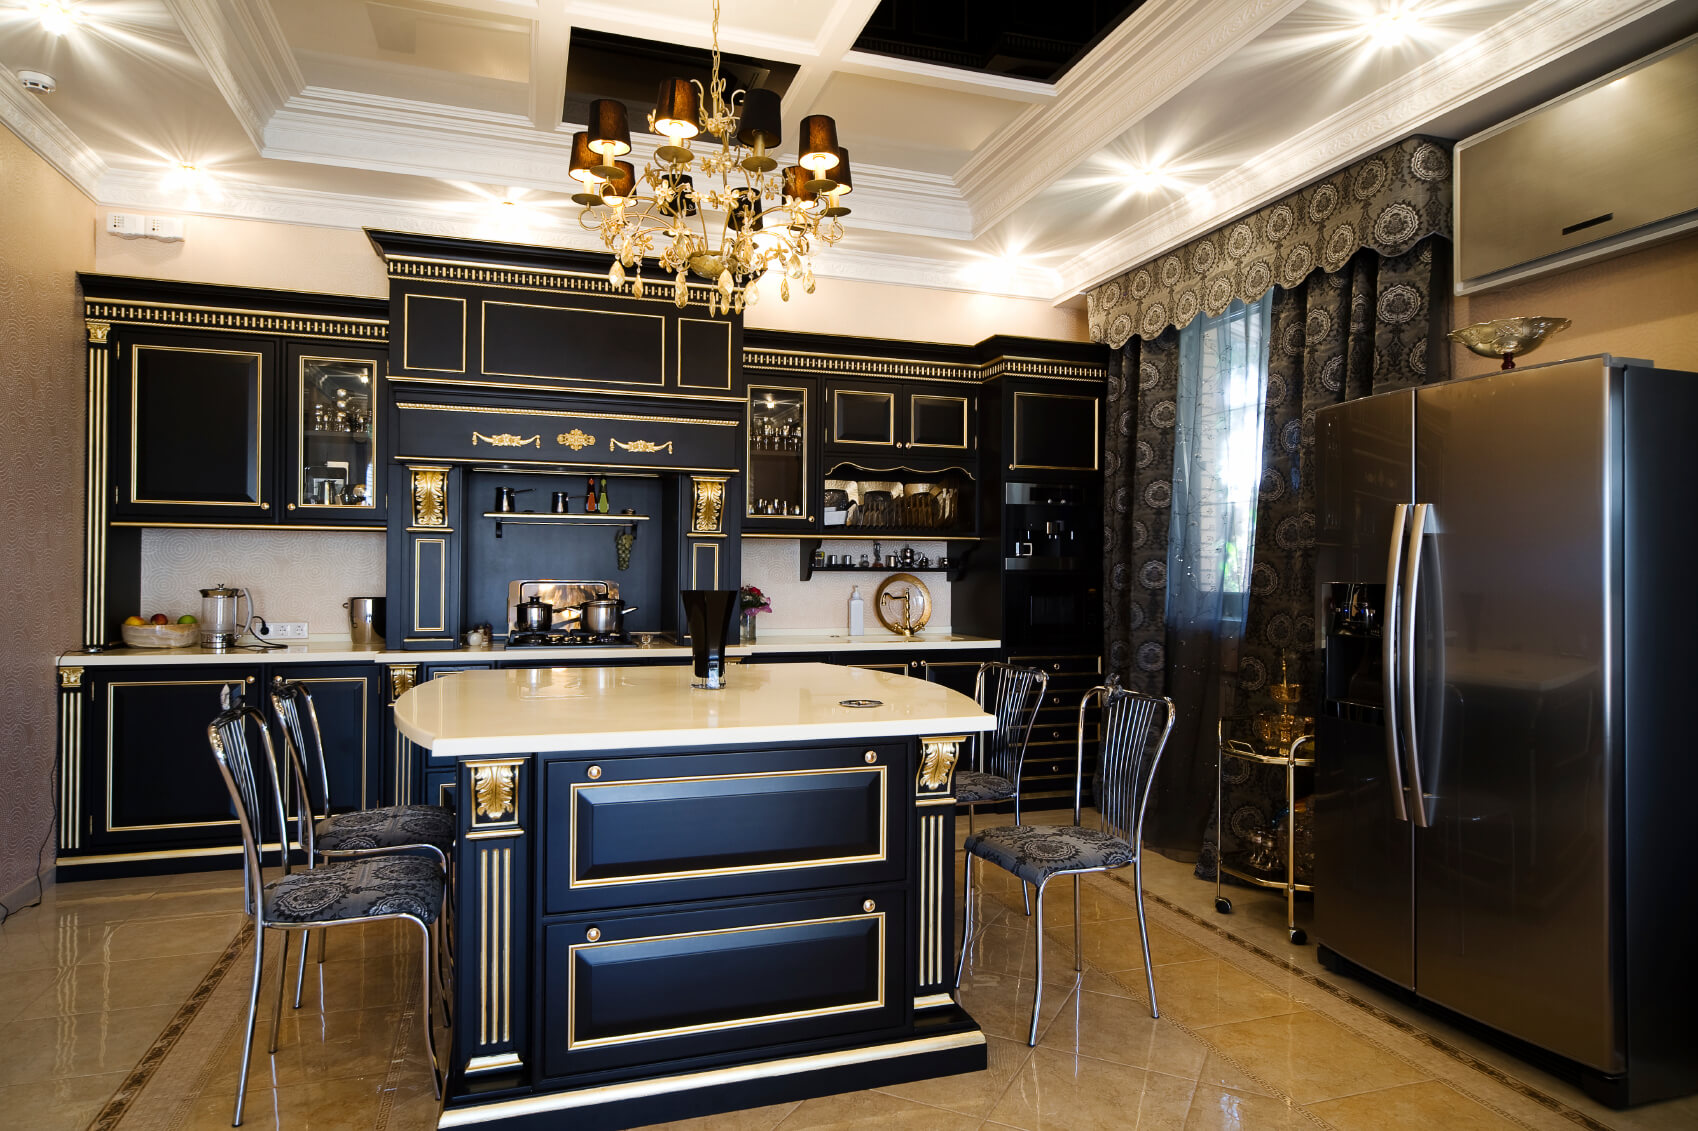 Kitchen cabinets to go atlanta - Ultra Luxurious Kitchen Features Gilded Black Wood Cabinetry Over Beige Marble Flooring White Marble Countertops